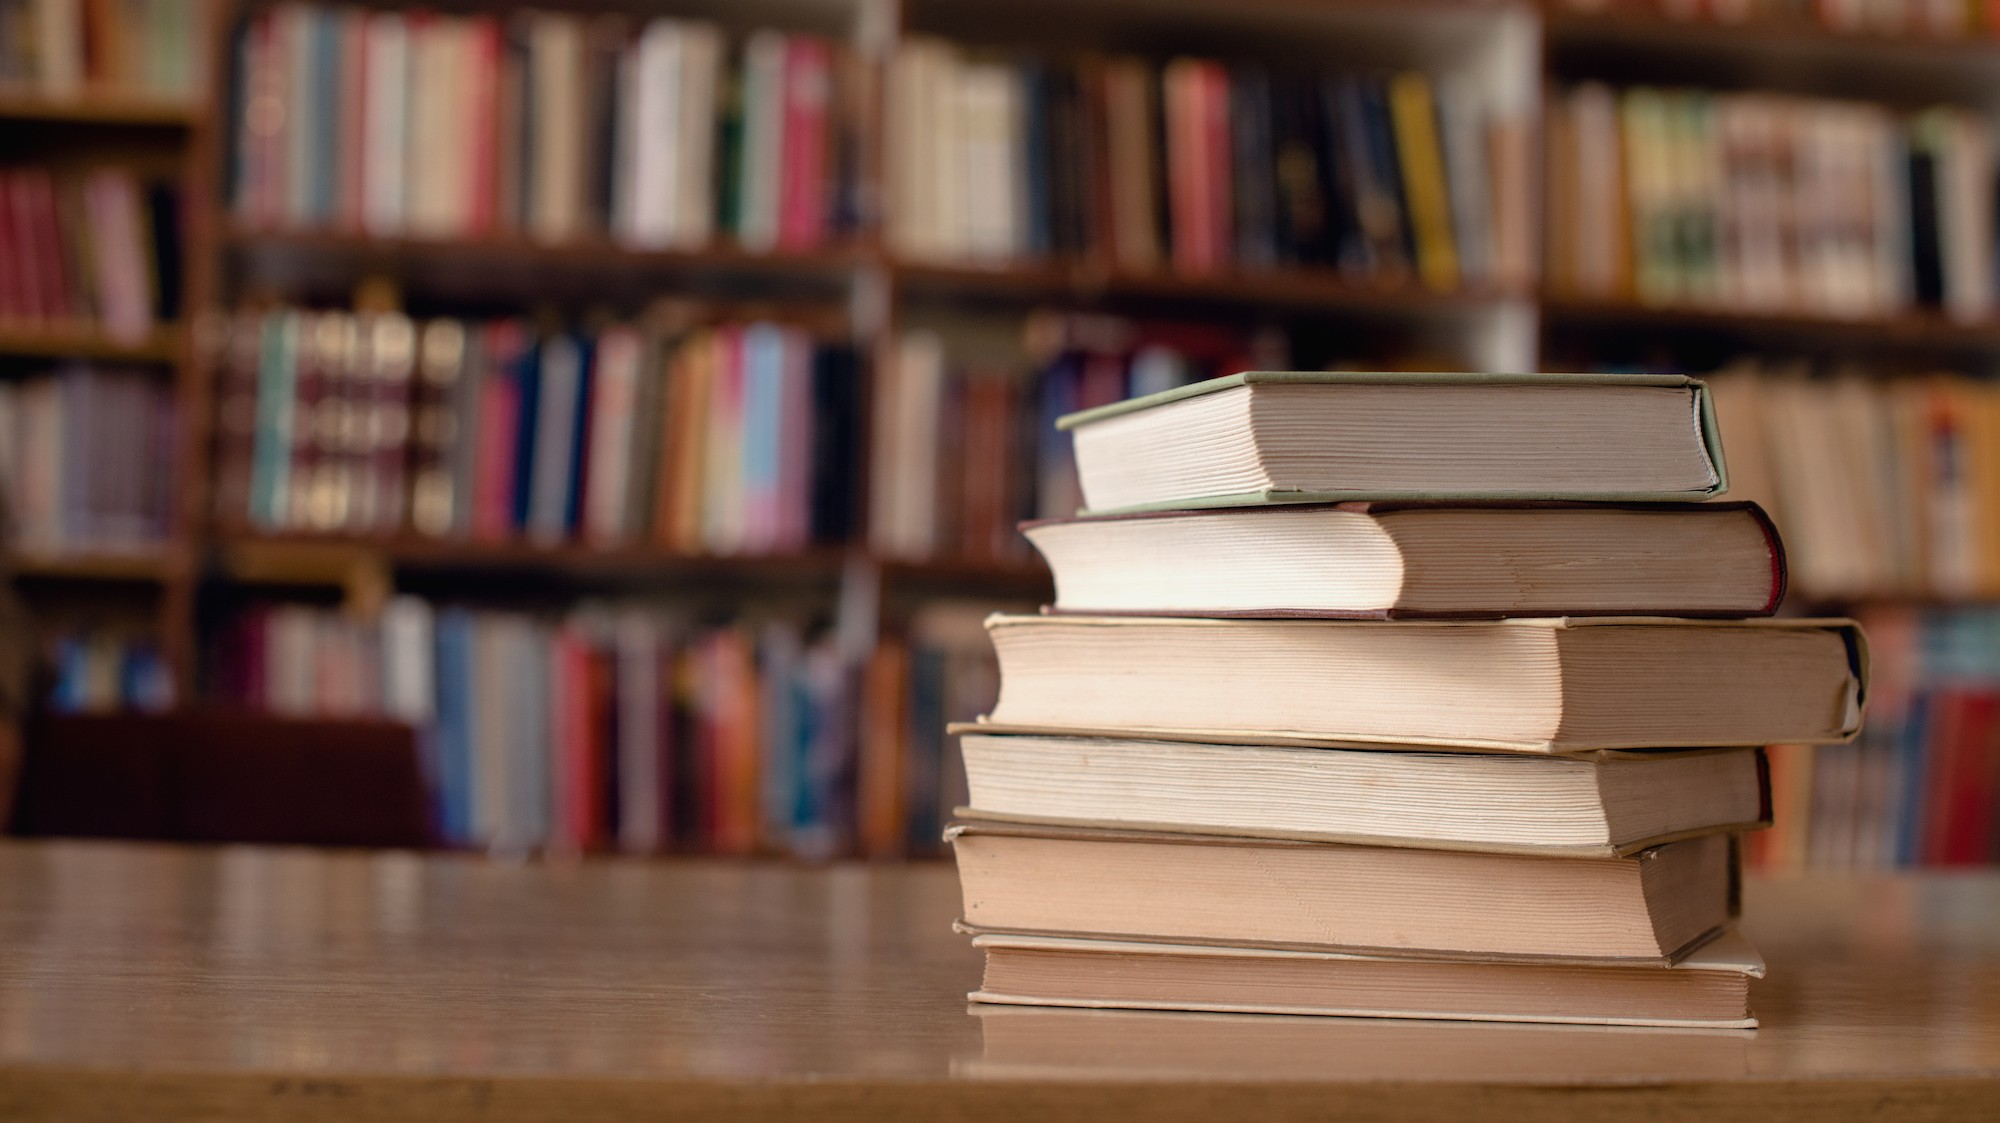 Stack of books on a table.